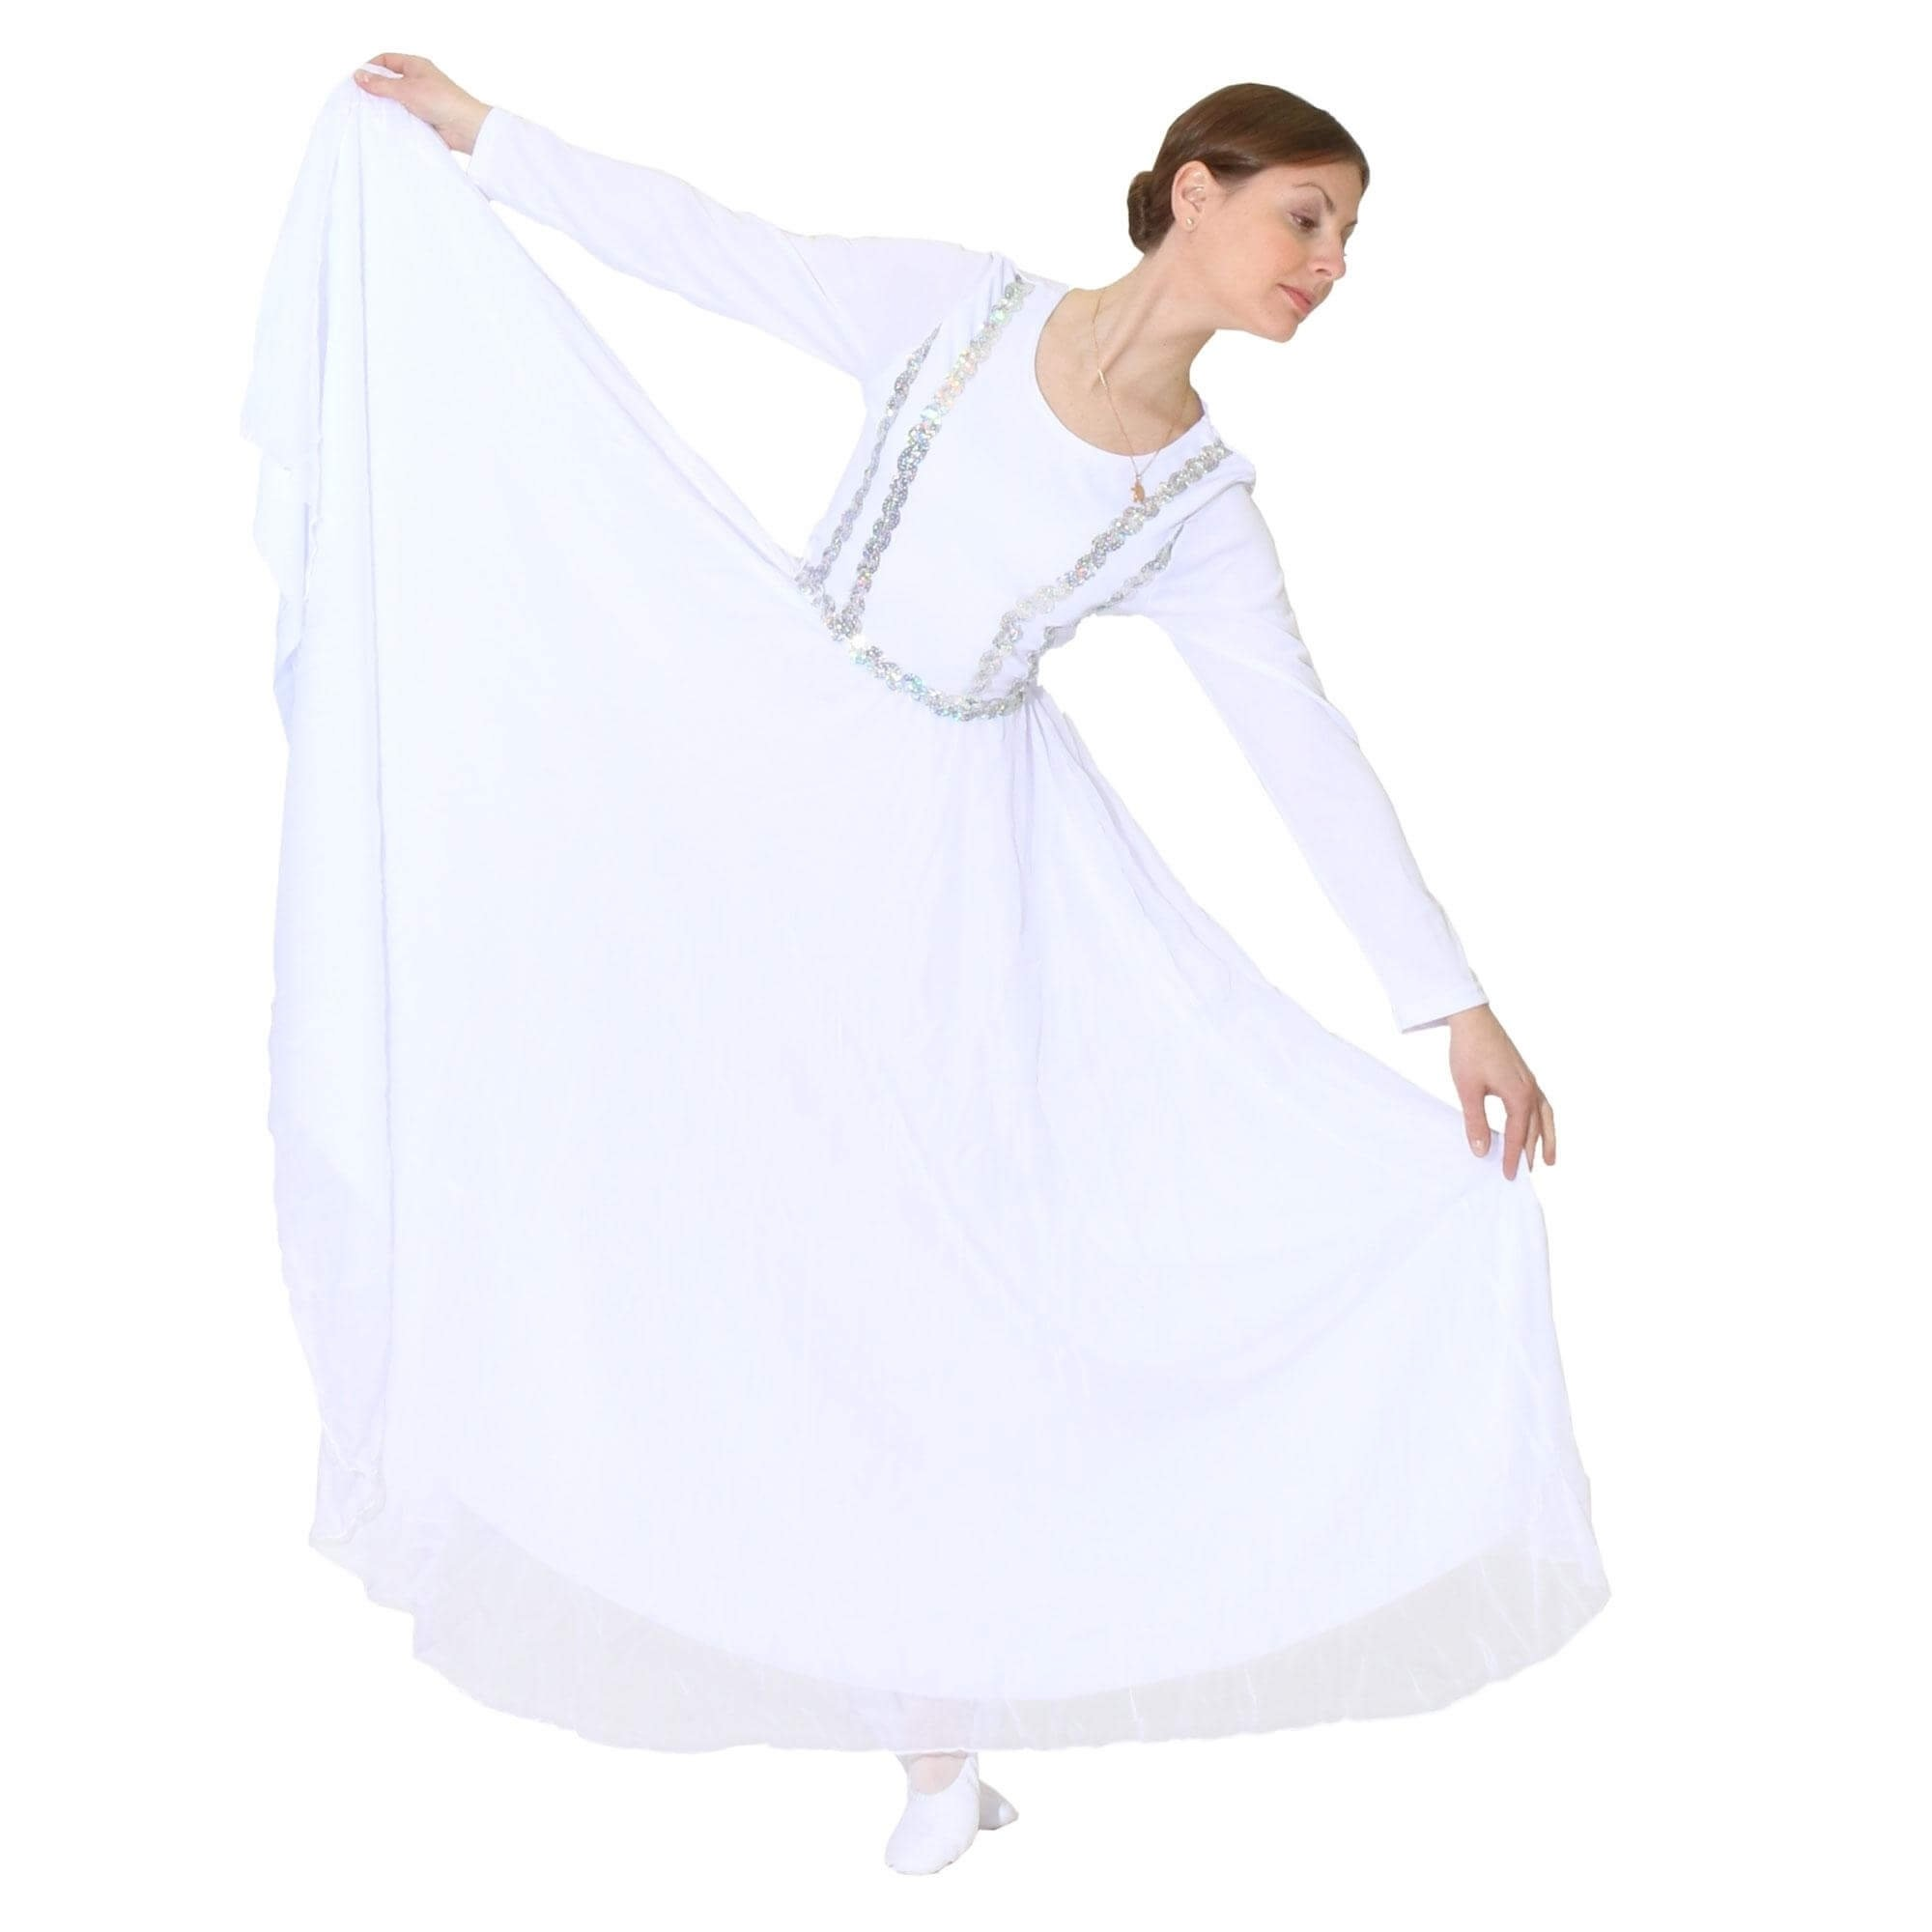 Danzcue Praise Living Water Dress